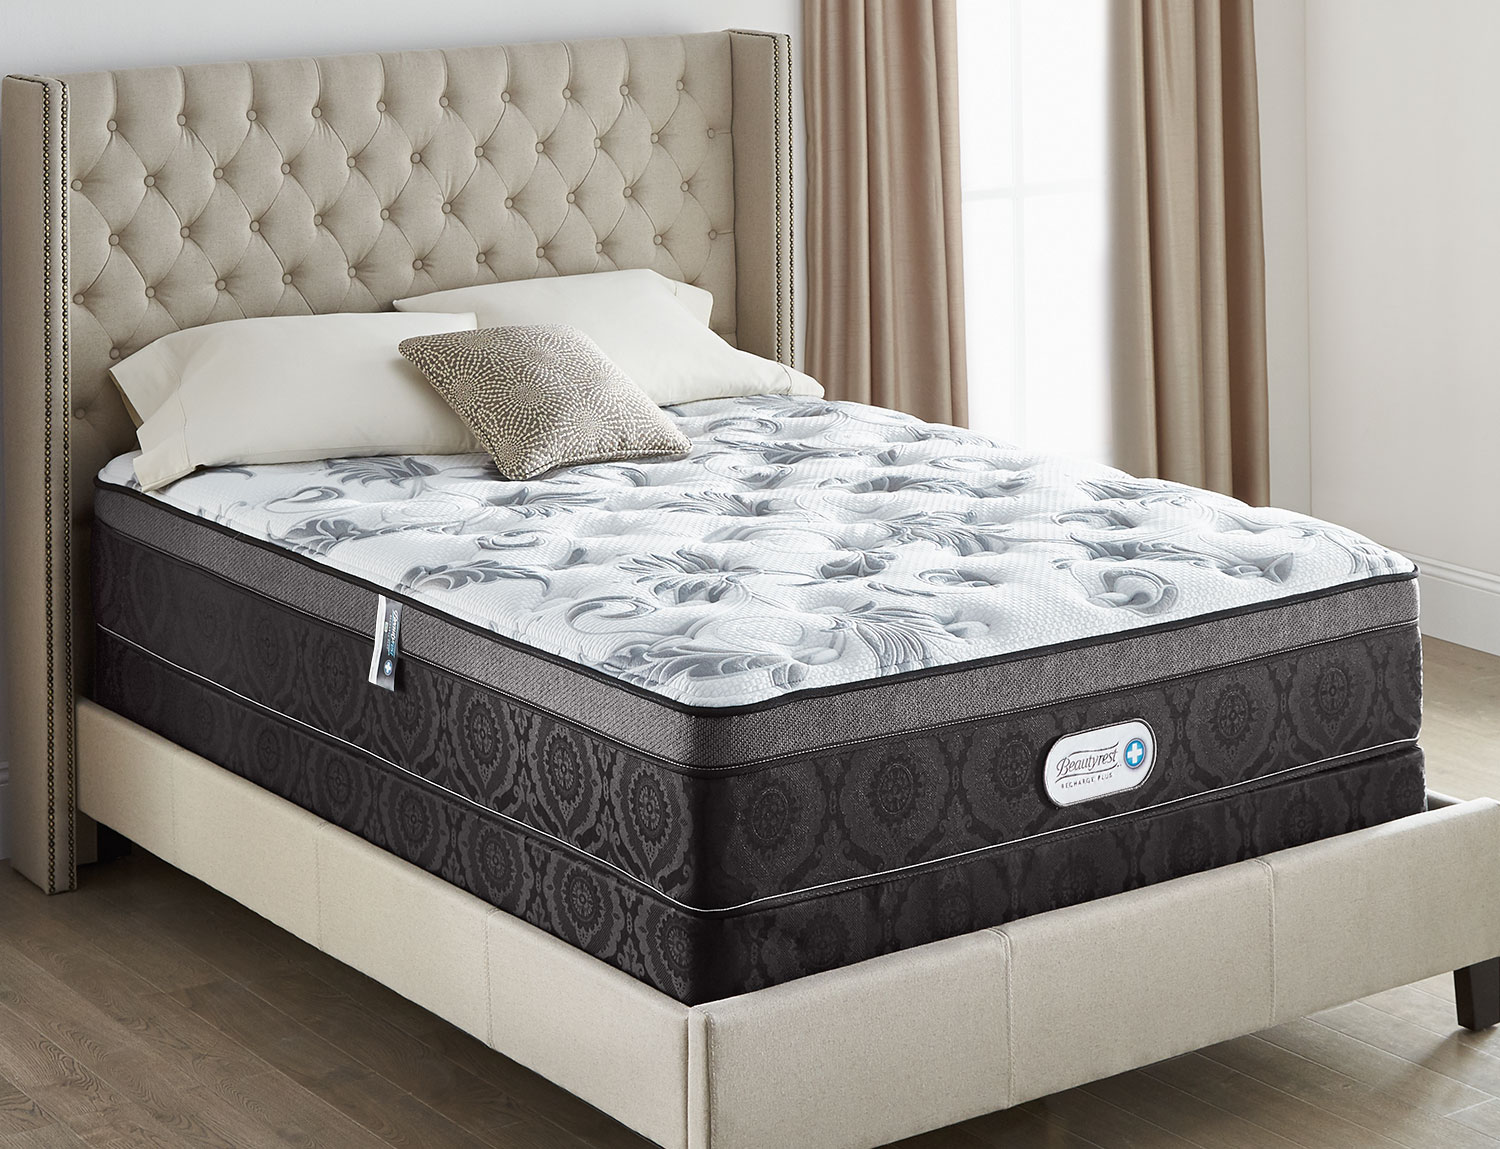 Beautyrest® Recharge Plus Allure Ultra Euro-Top Full Mattress Set